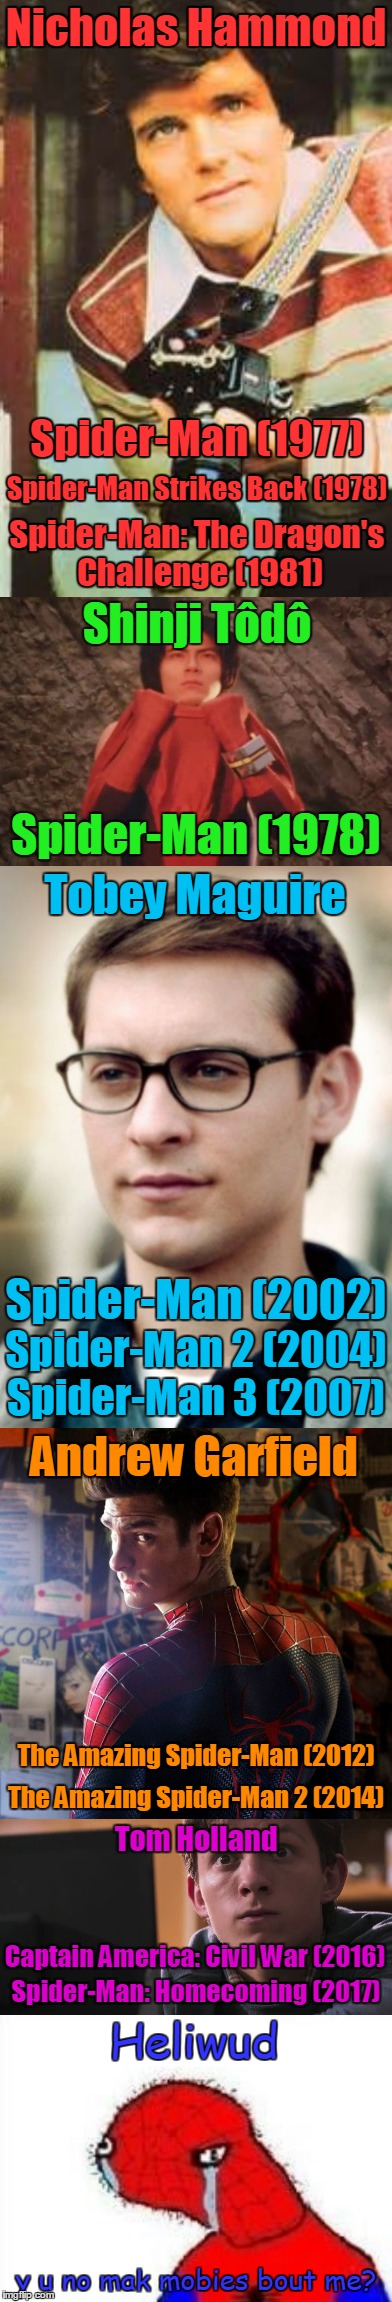 Spoderman Wants Hollywood to Make a Movie About His Life | Nicholas Hammond Spider-Man: The Dragon's Challenge (1981) Spider-Man Strikes Back (1978) Spider-Man (1977) | image tagged in memes,movies,spider-man,the amazing spider-man,spoderman,expectations vs reality | made w/ Imgflip meme maker